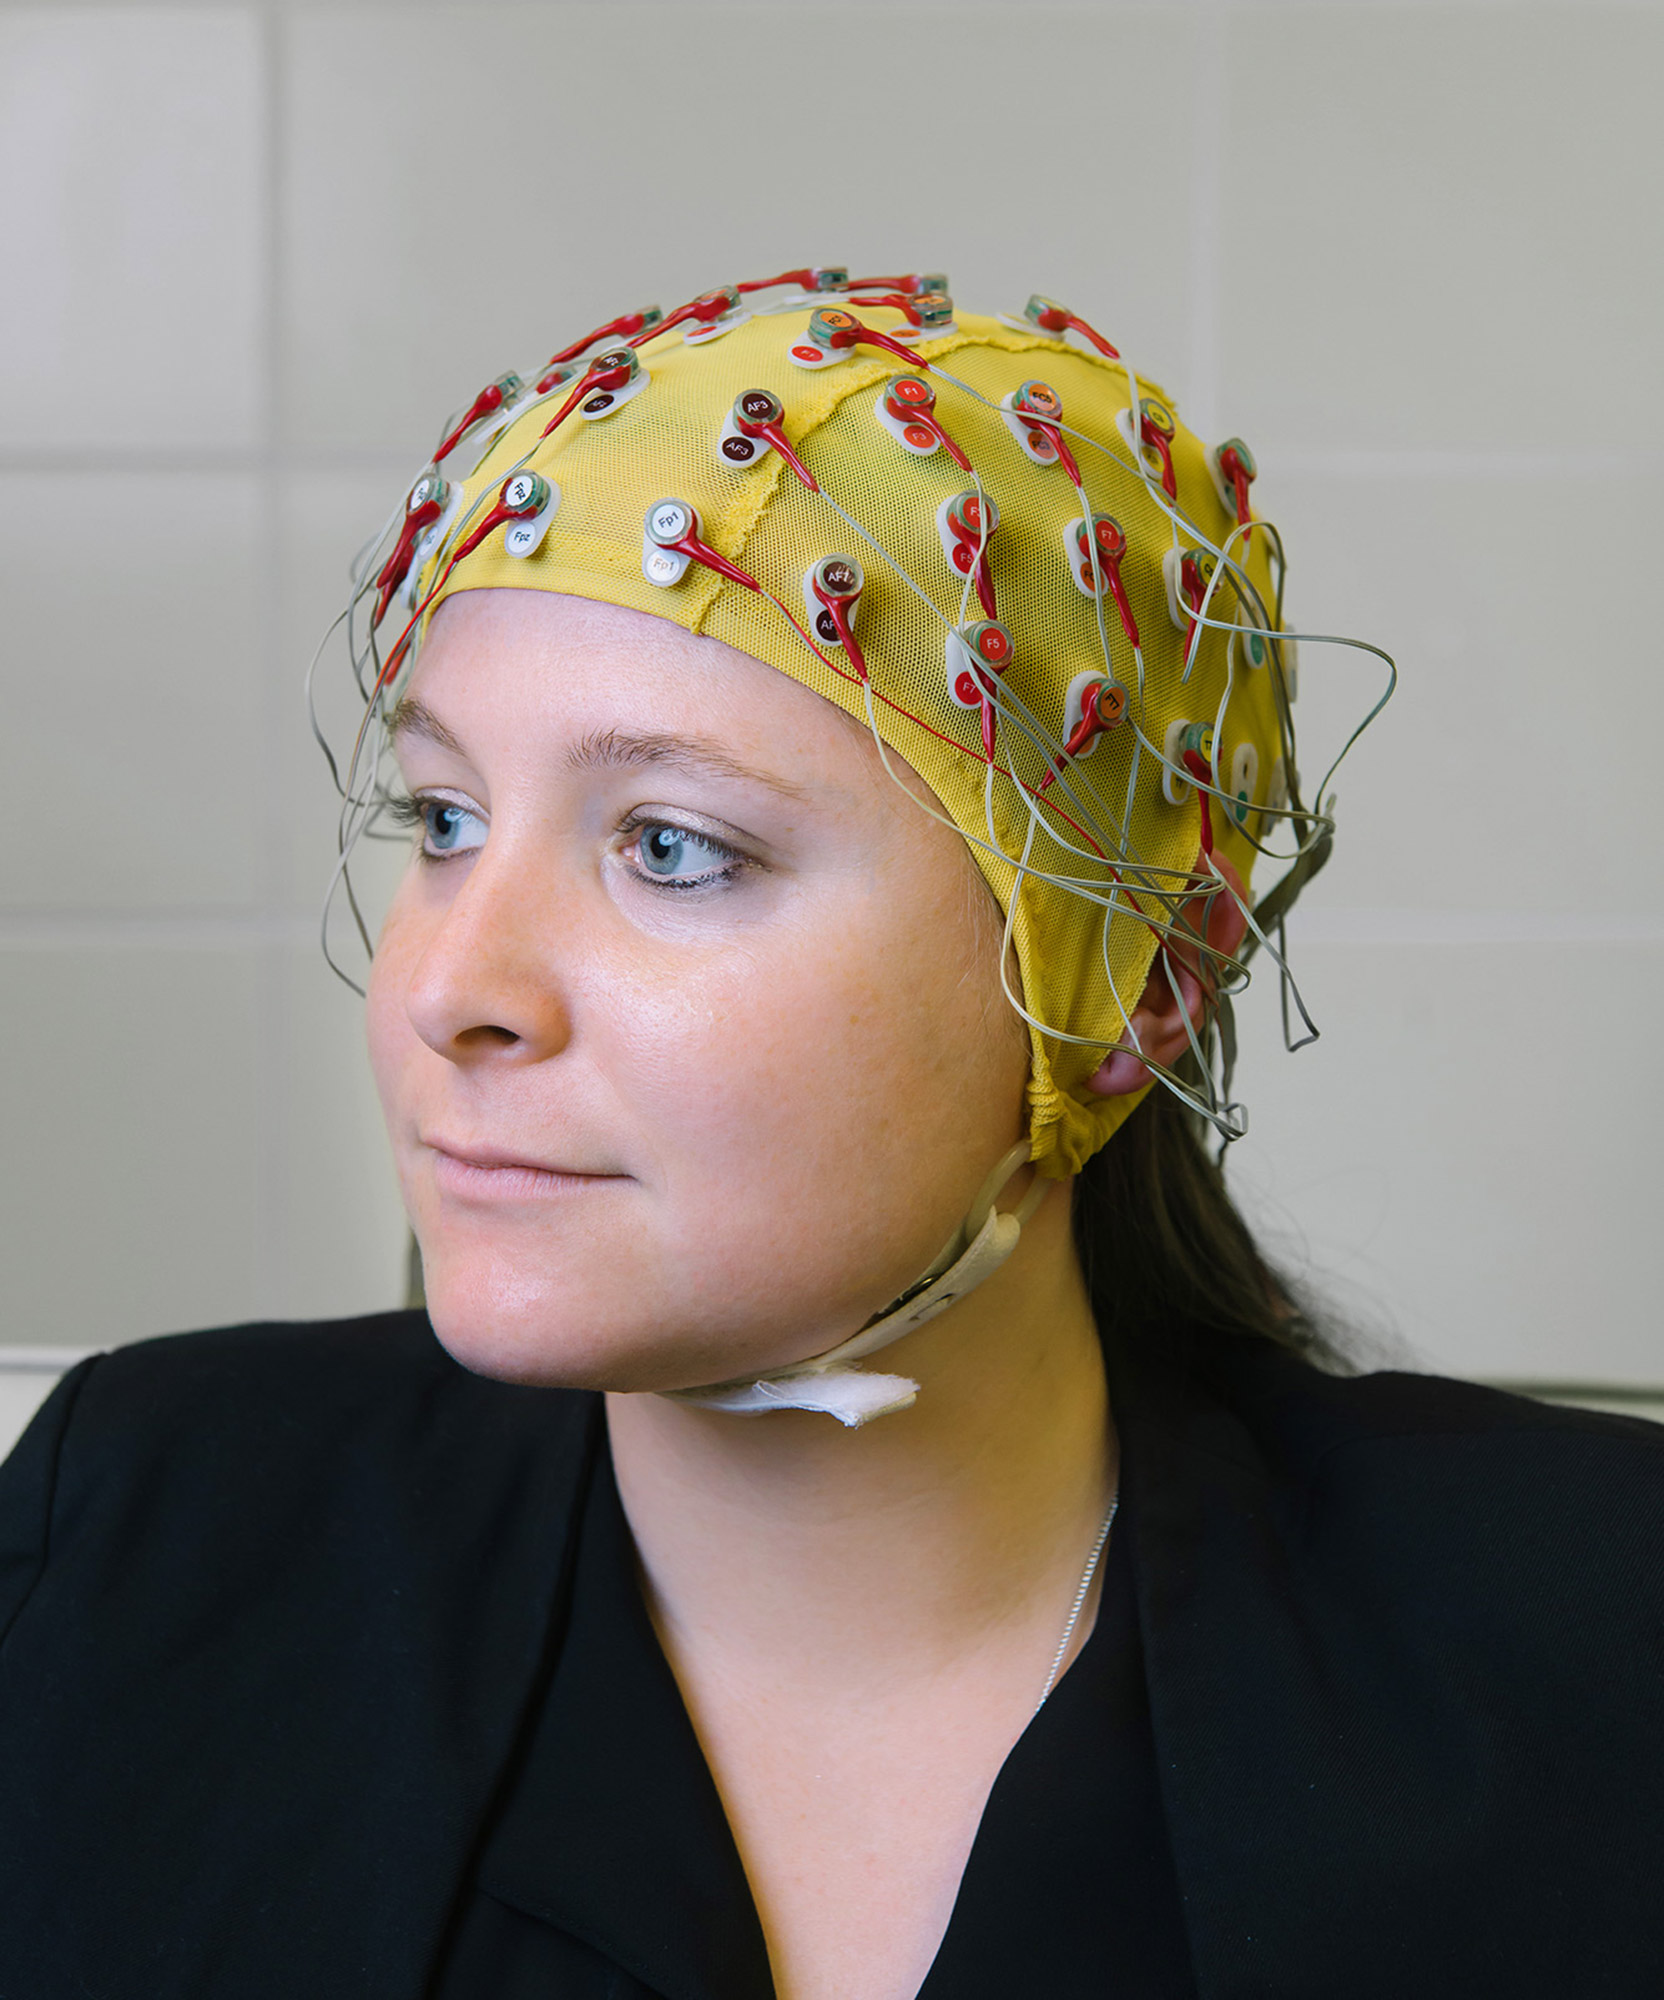 A good sport, Patricia is shown here modeling the EEG headset. Her research uses electroencephalography to determine the neural mechanisms, clinical implications, and educational benefits of music and music training on the brain and nervous system.